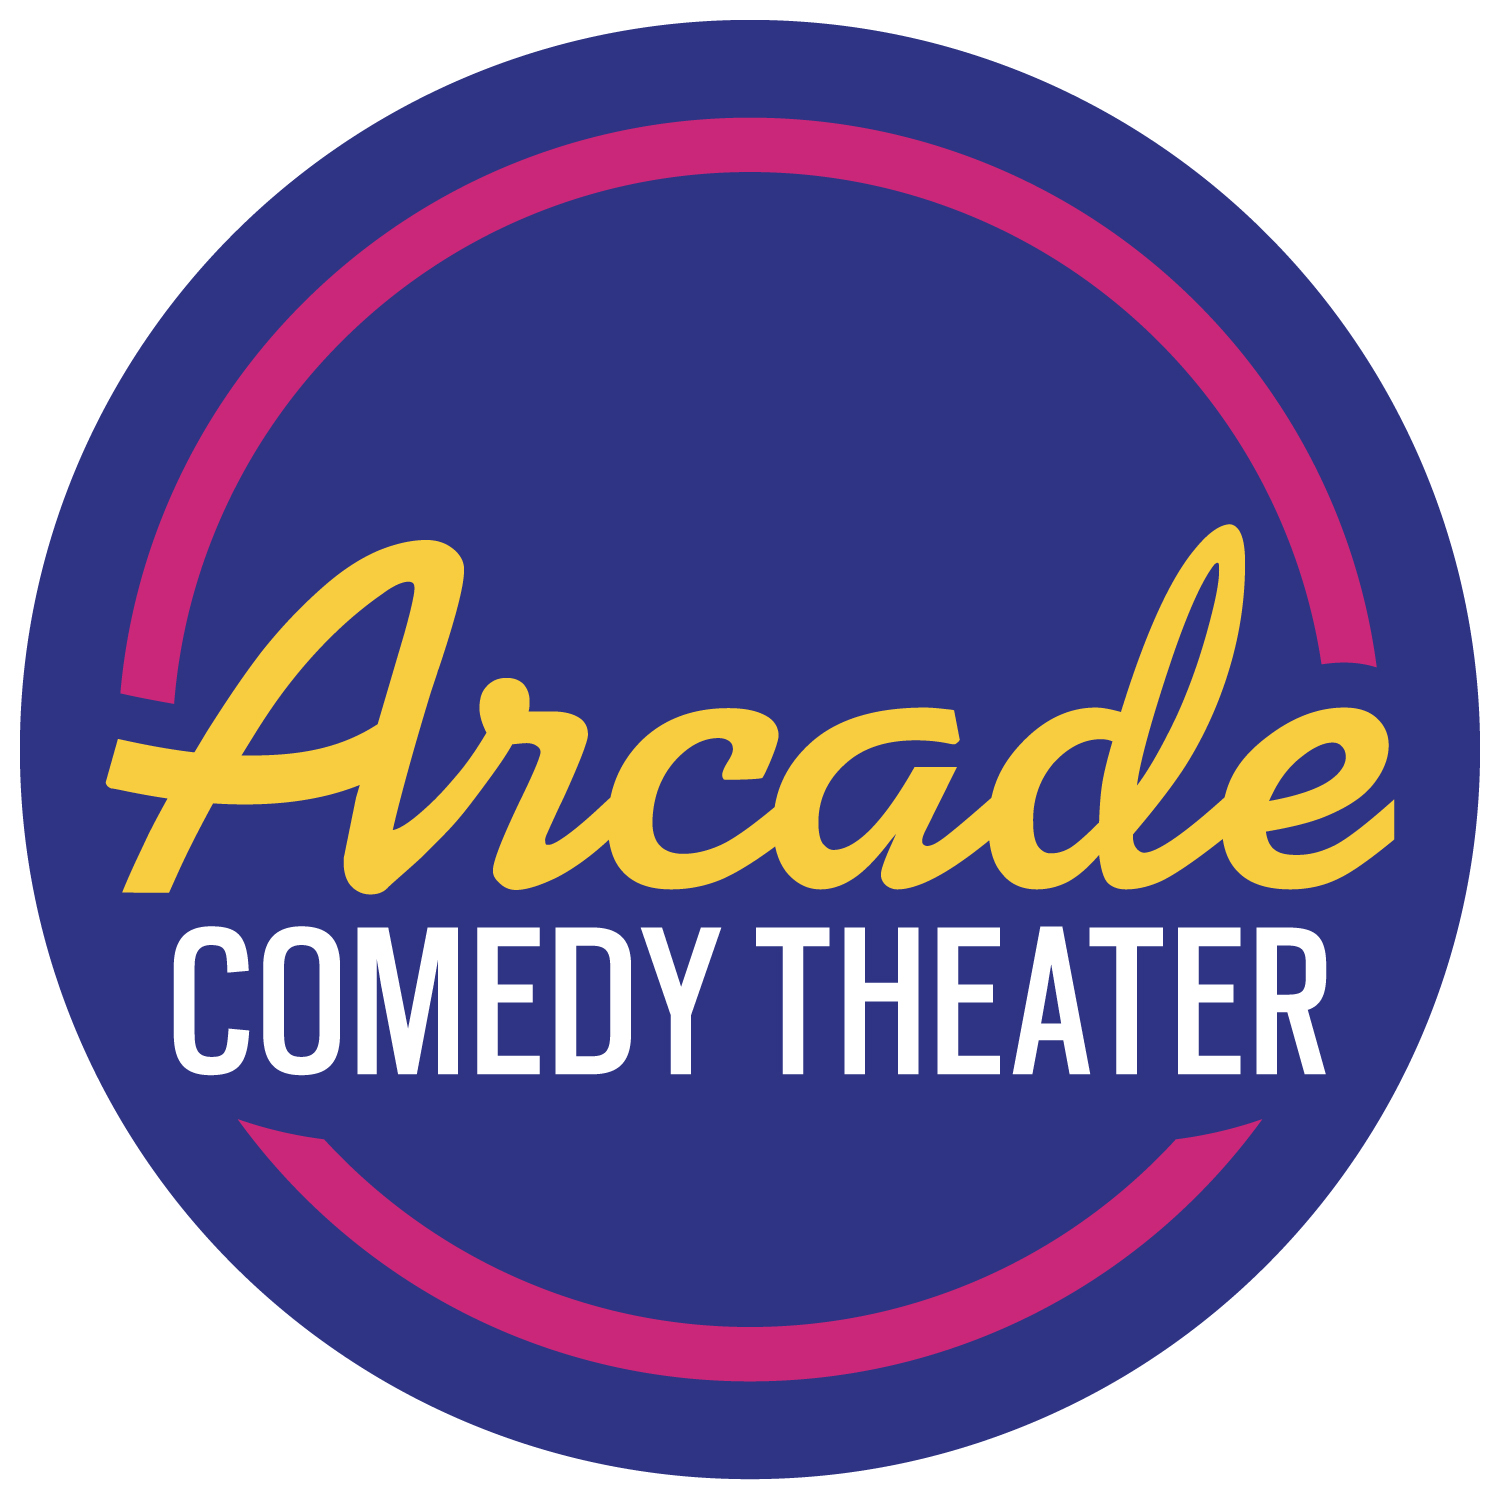 Arcade Comedy Theater 811 Liberty Avenue